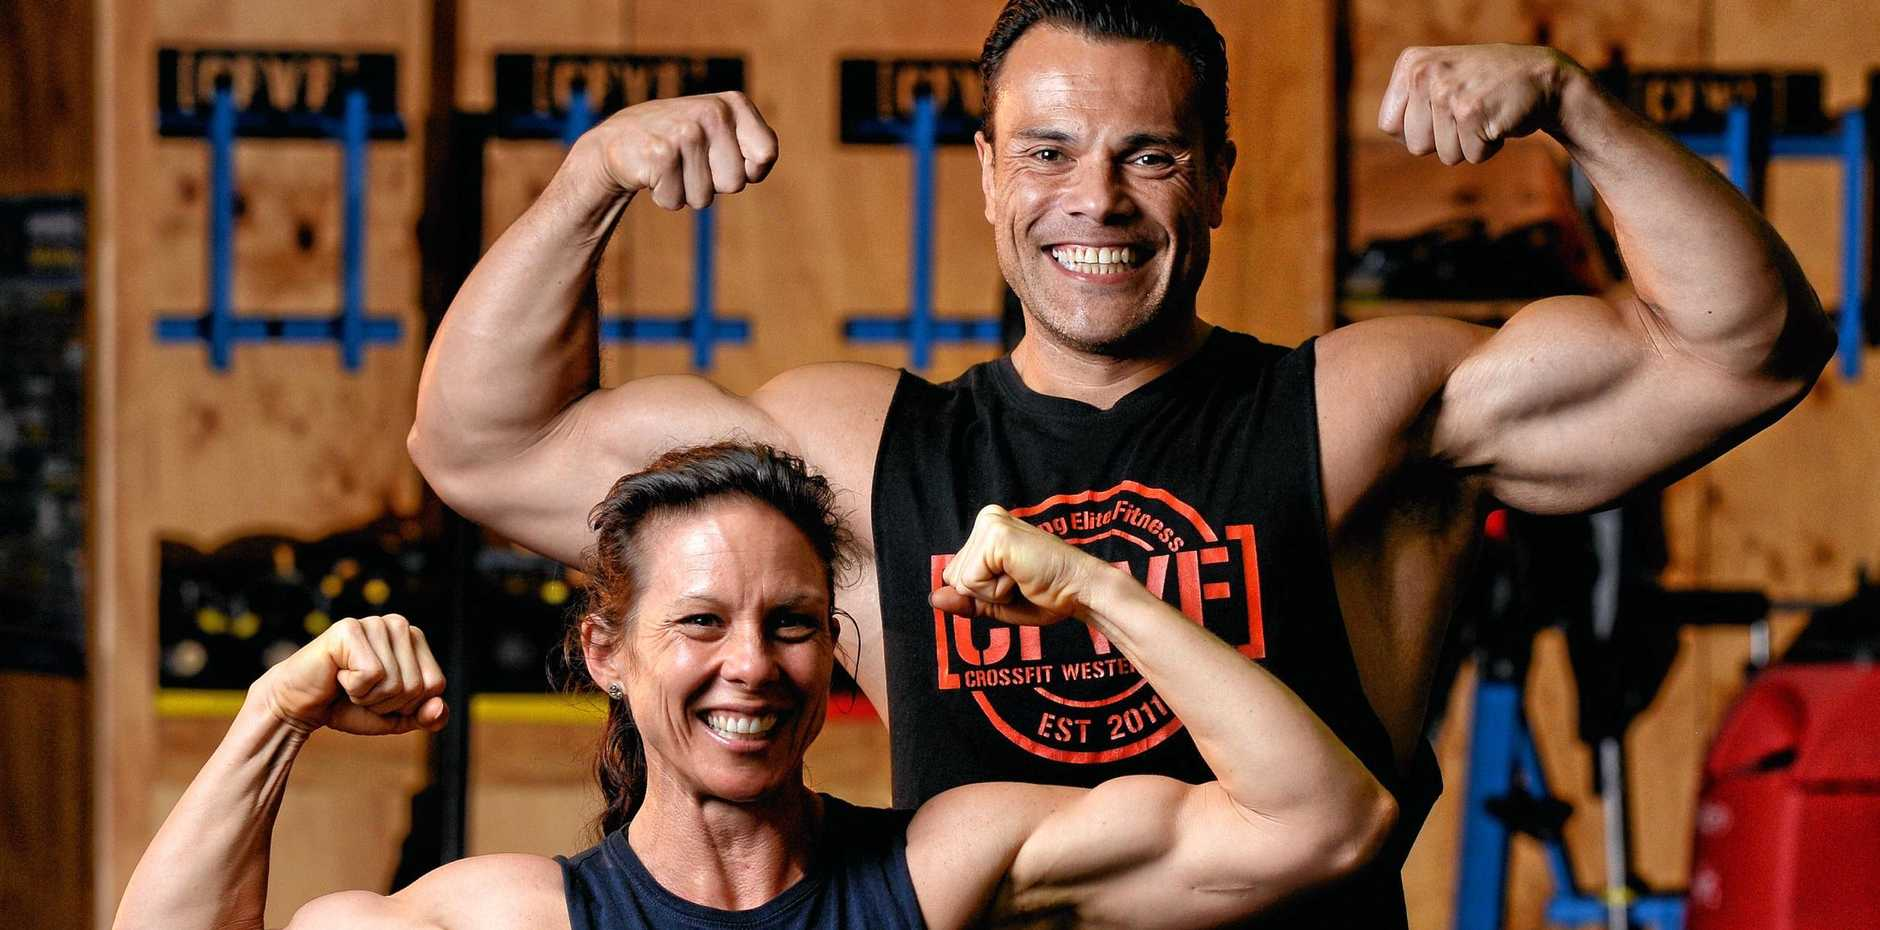 TERRIFIC TEAM: Kate Morris and Willy Balas proved their supreme fitness and teamwork by winning the CrossFit Team Series 40-44 years age category.